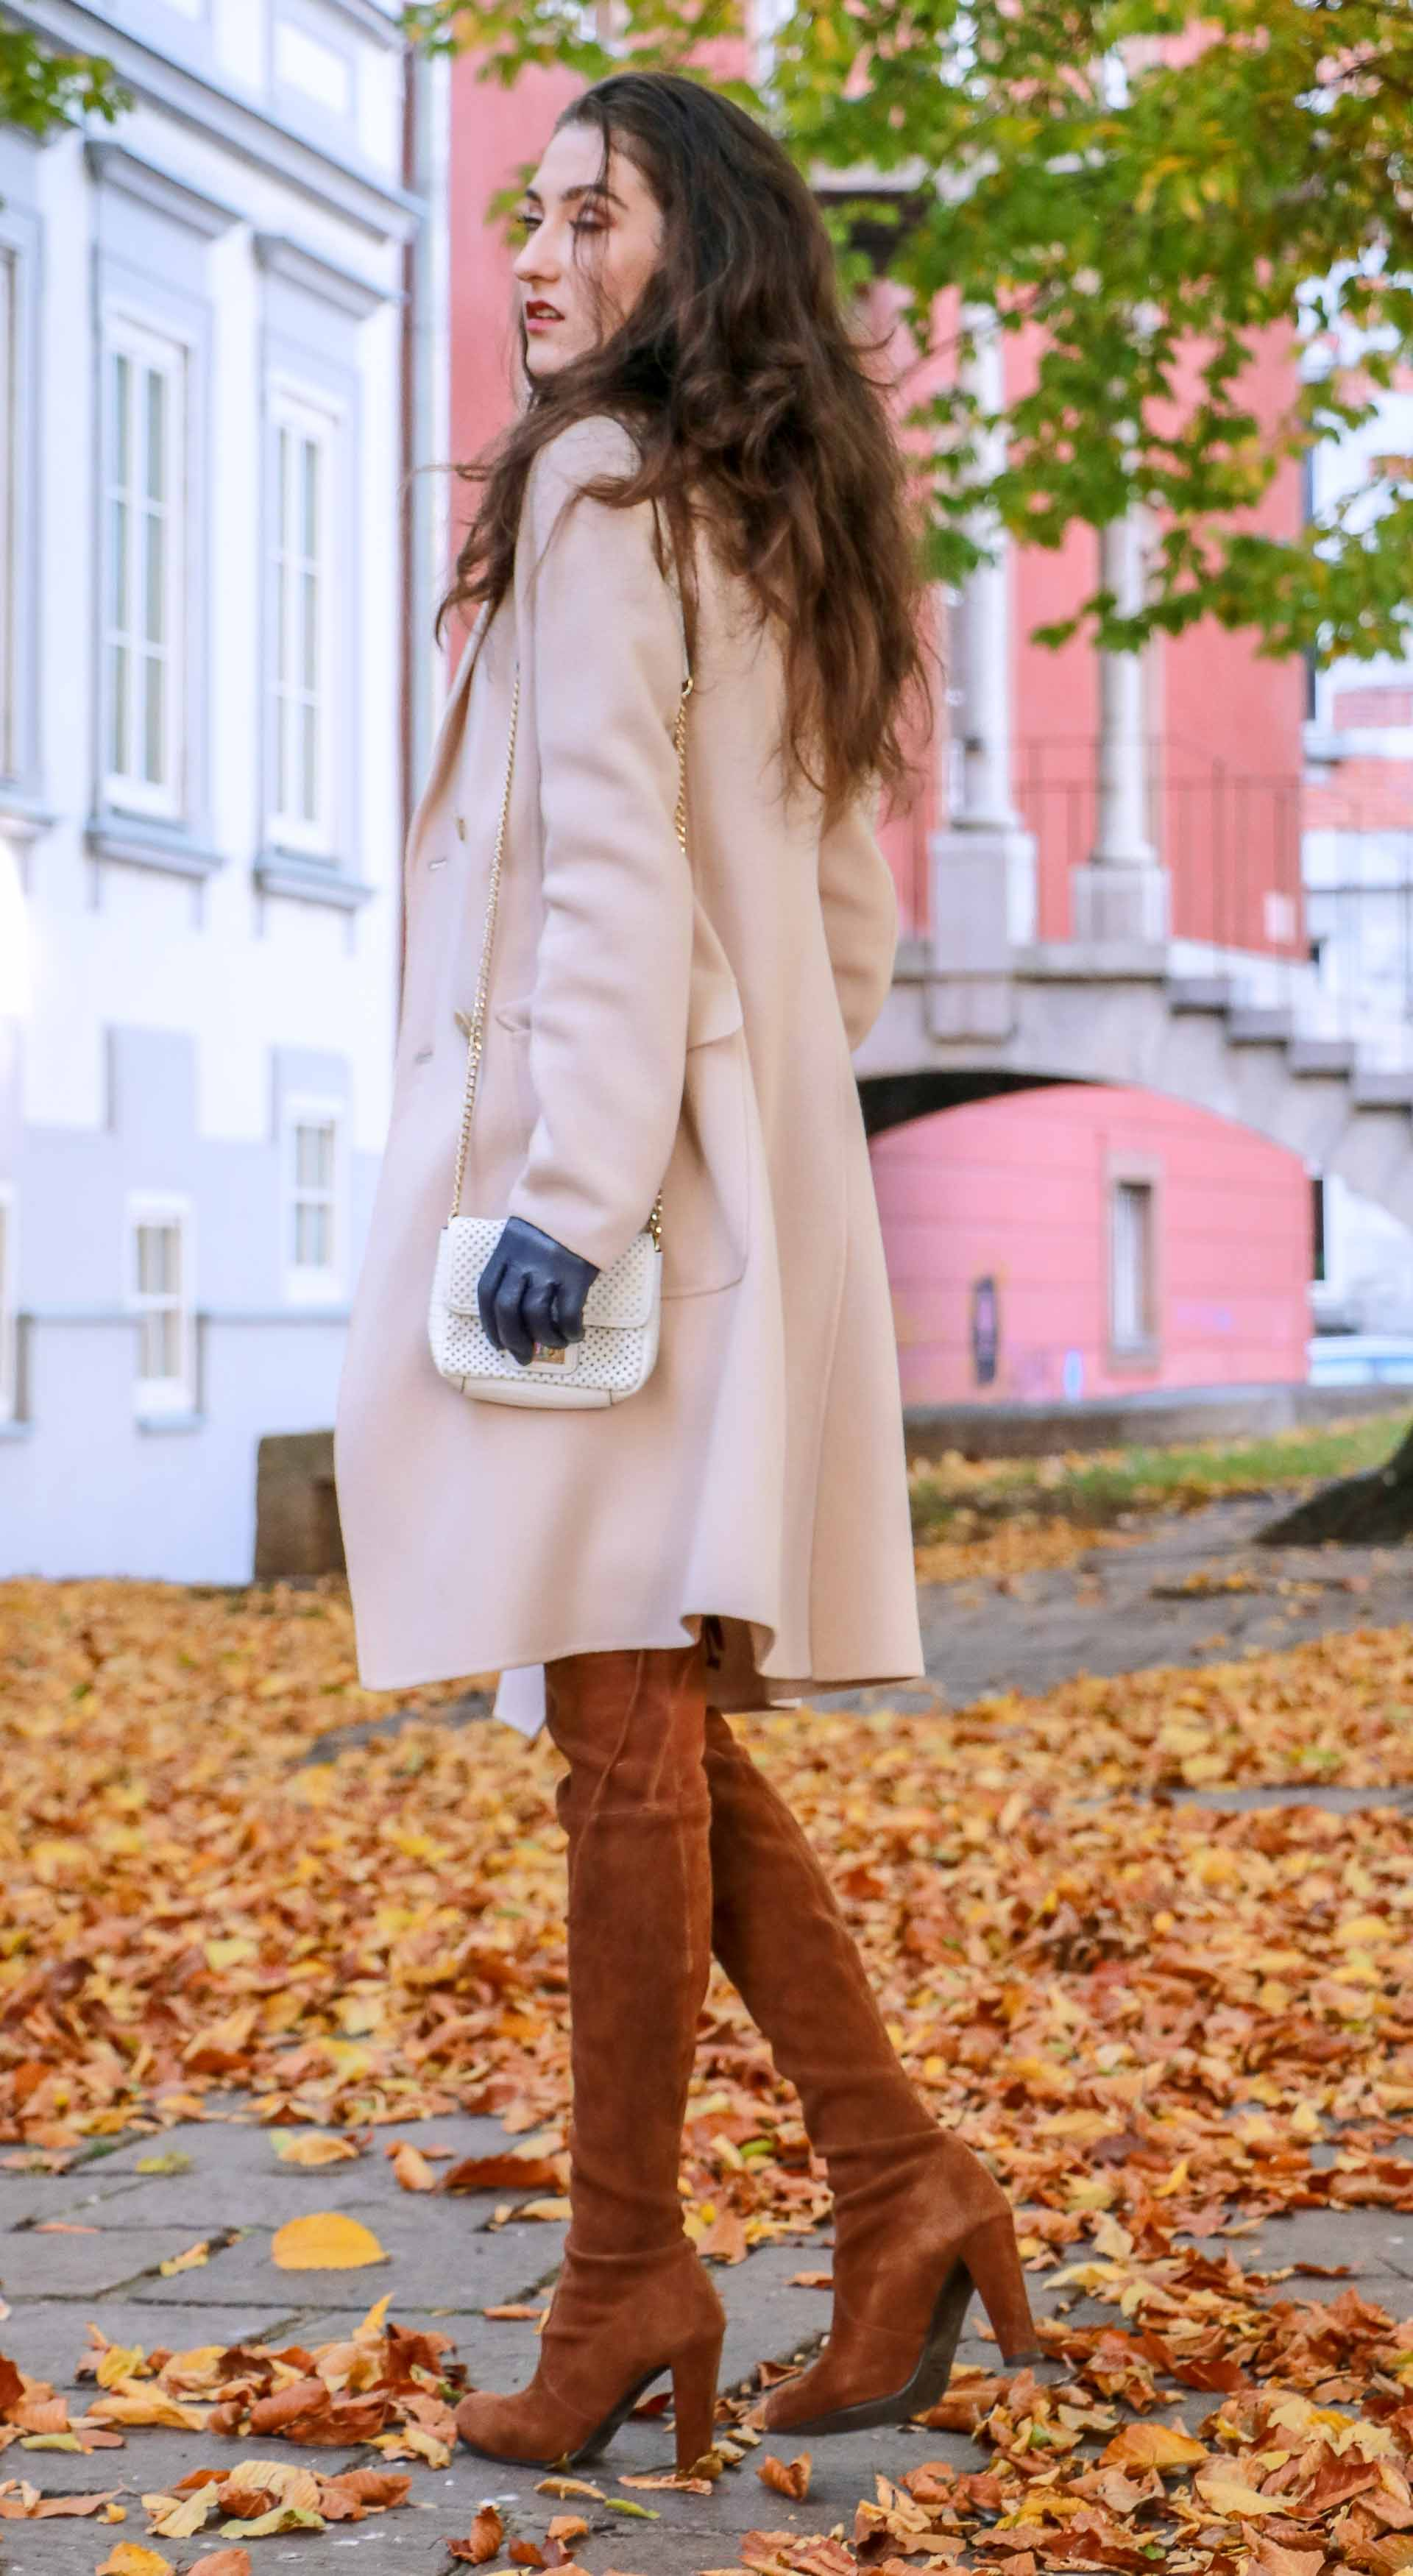 Beautiful Slovenian Fashion Blogger Veronika Lipar of Brunette from Wall wearing Max Mara coat, Stuart Weitzman brown over the knee boots, white chain strap bag